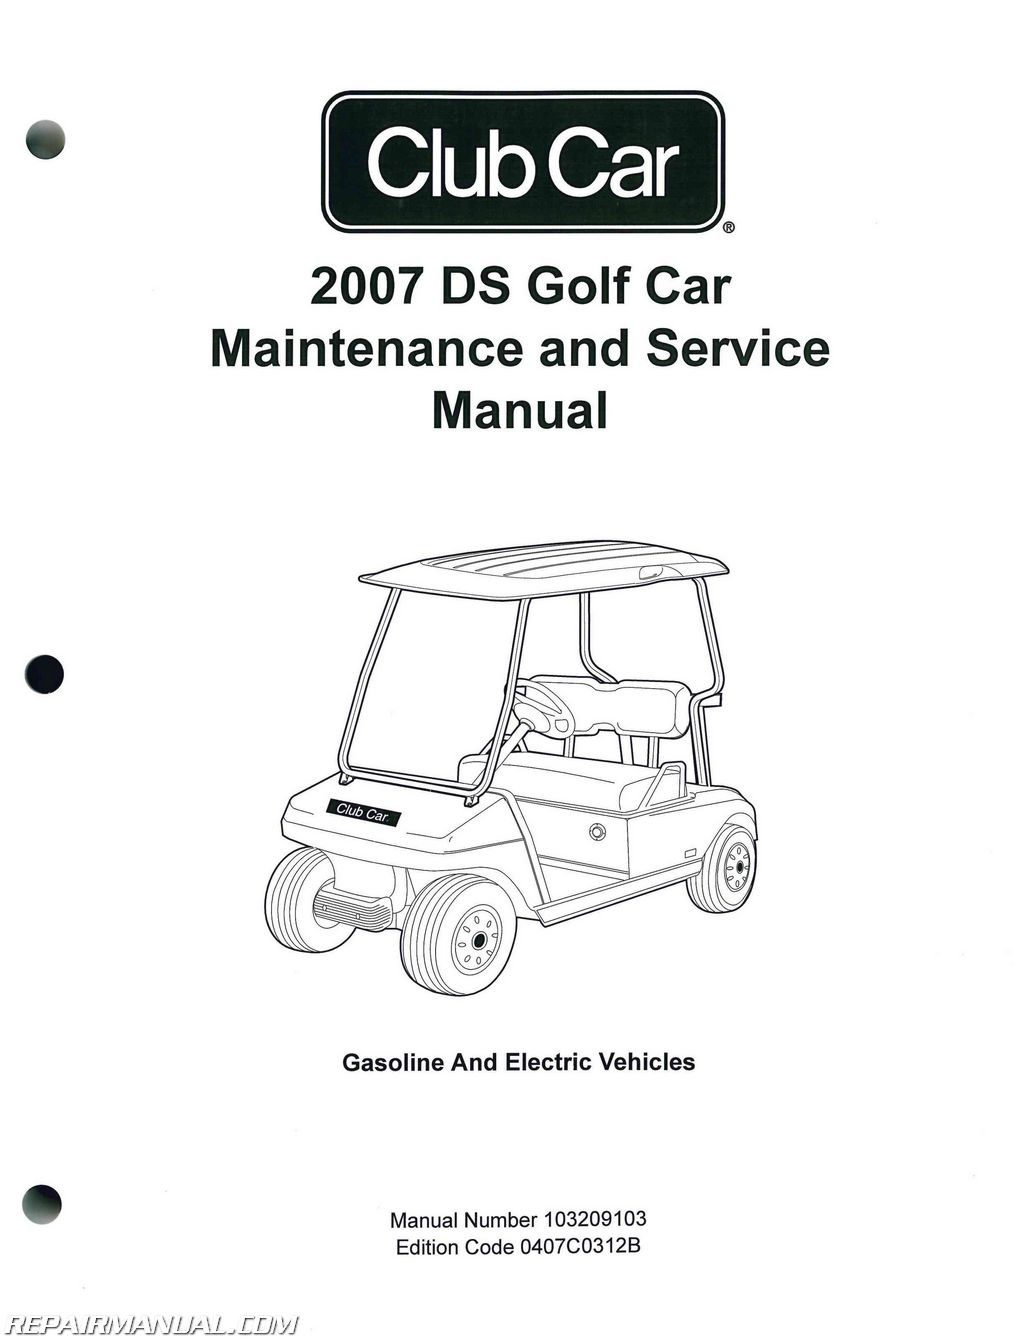 1996 Club Car Ds 48v Wiring Diagram Explore Schematic 2007 How To Read Electrical Manual User Guide That Easy U2022 Rh Sibere Co 1994